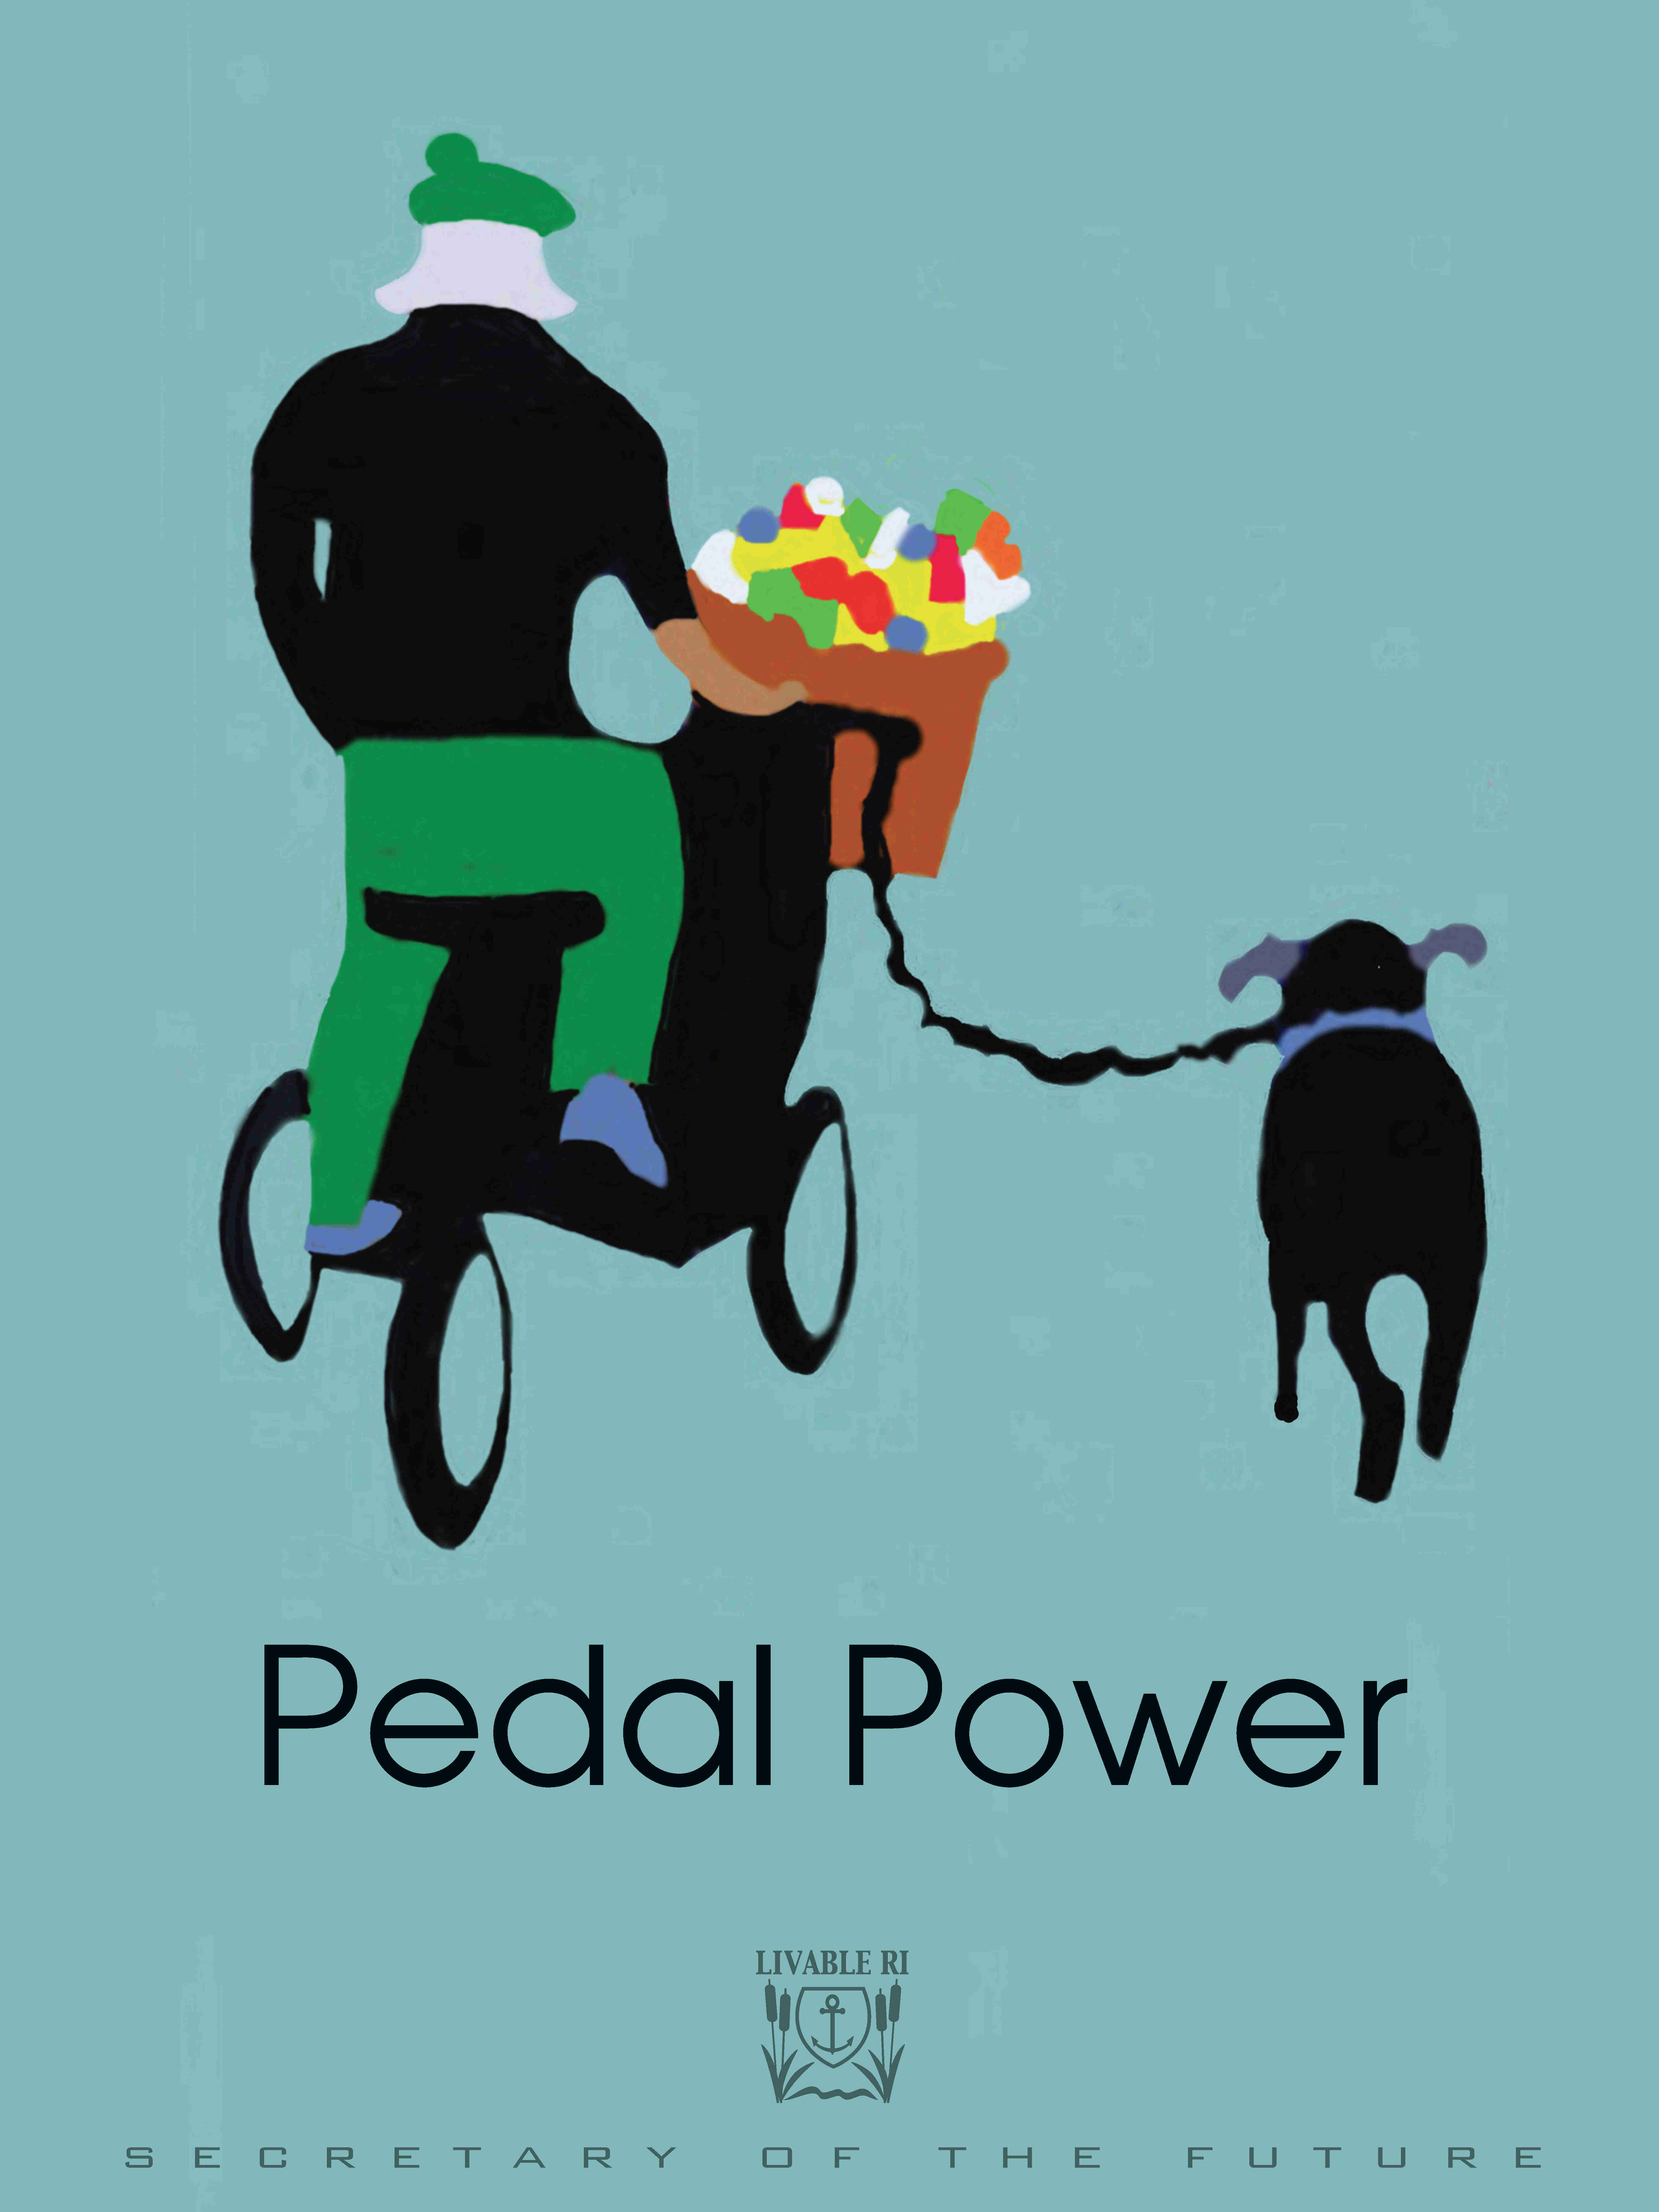 Pedal_Power_Poster_18x24_Final